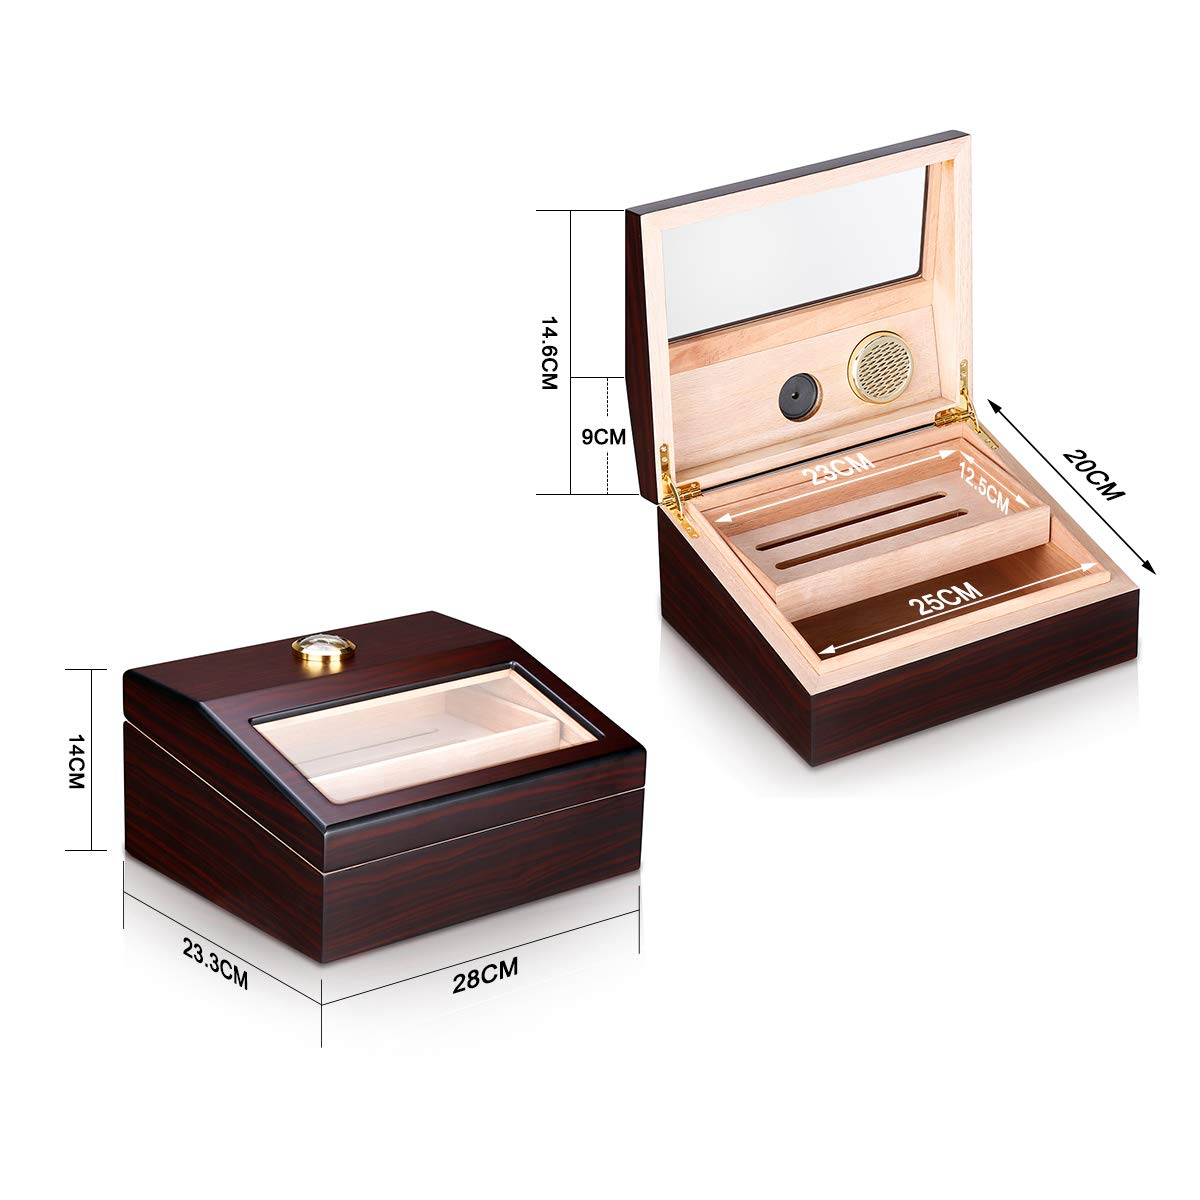 Humidor Cigar Humidor FLOUREO Wooden Luxury Double Moisturizing Cigar Box with Built-in Humidifier and Hygrometer Two-Layer Humidor Holds 50 to 60 Cigars